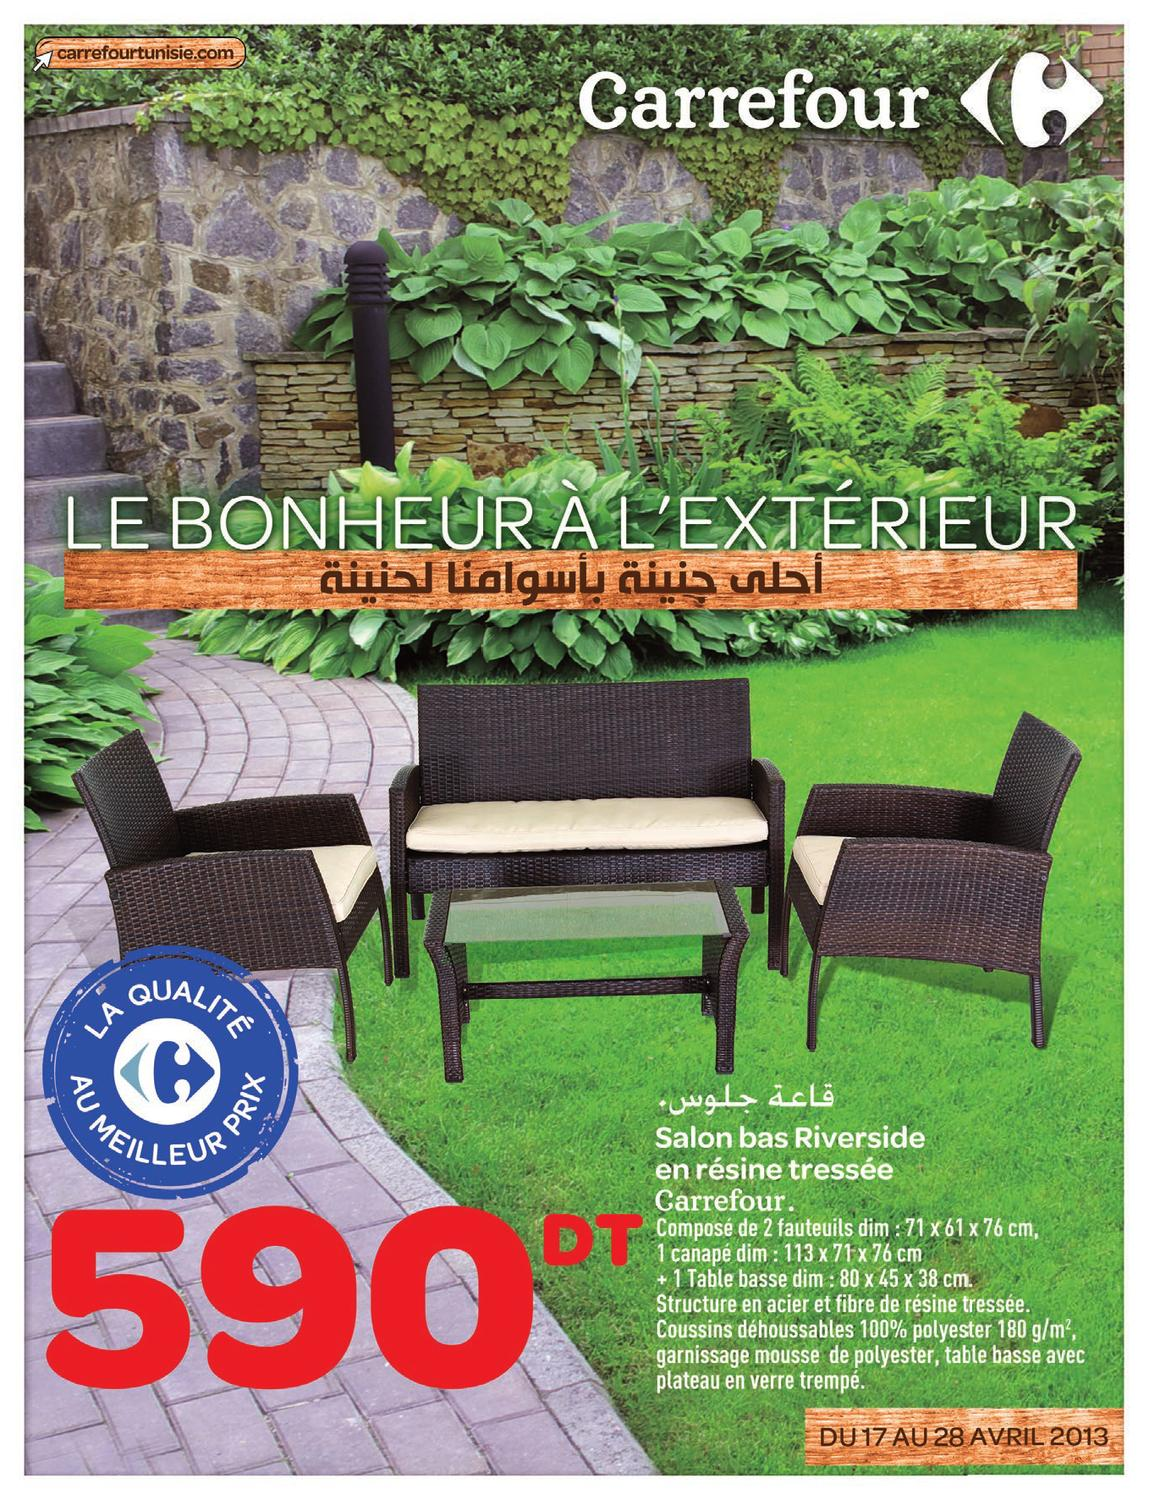 top catalogue carrefour le bonheur luextrieur by carrefour tunisie issuu with table de balcon. Black Bedroom Furniture Sets. Home Design Ideas